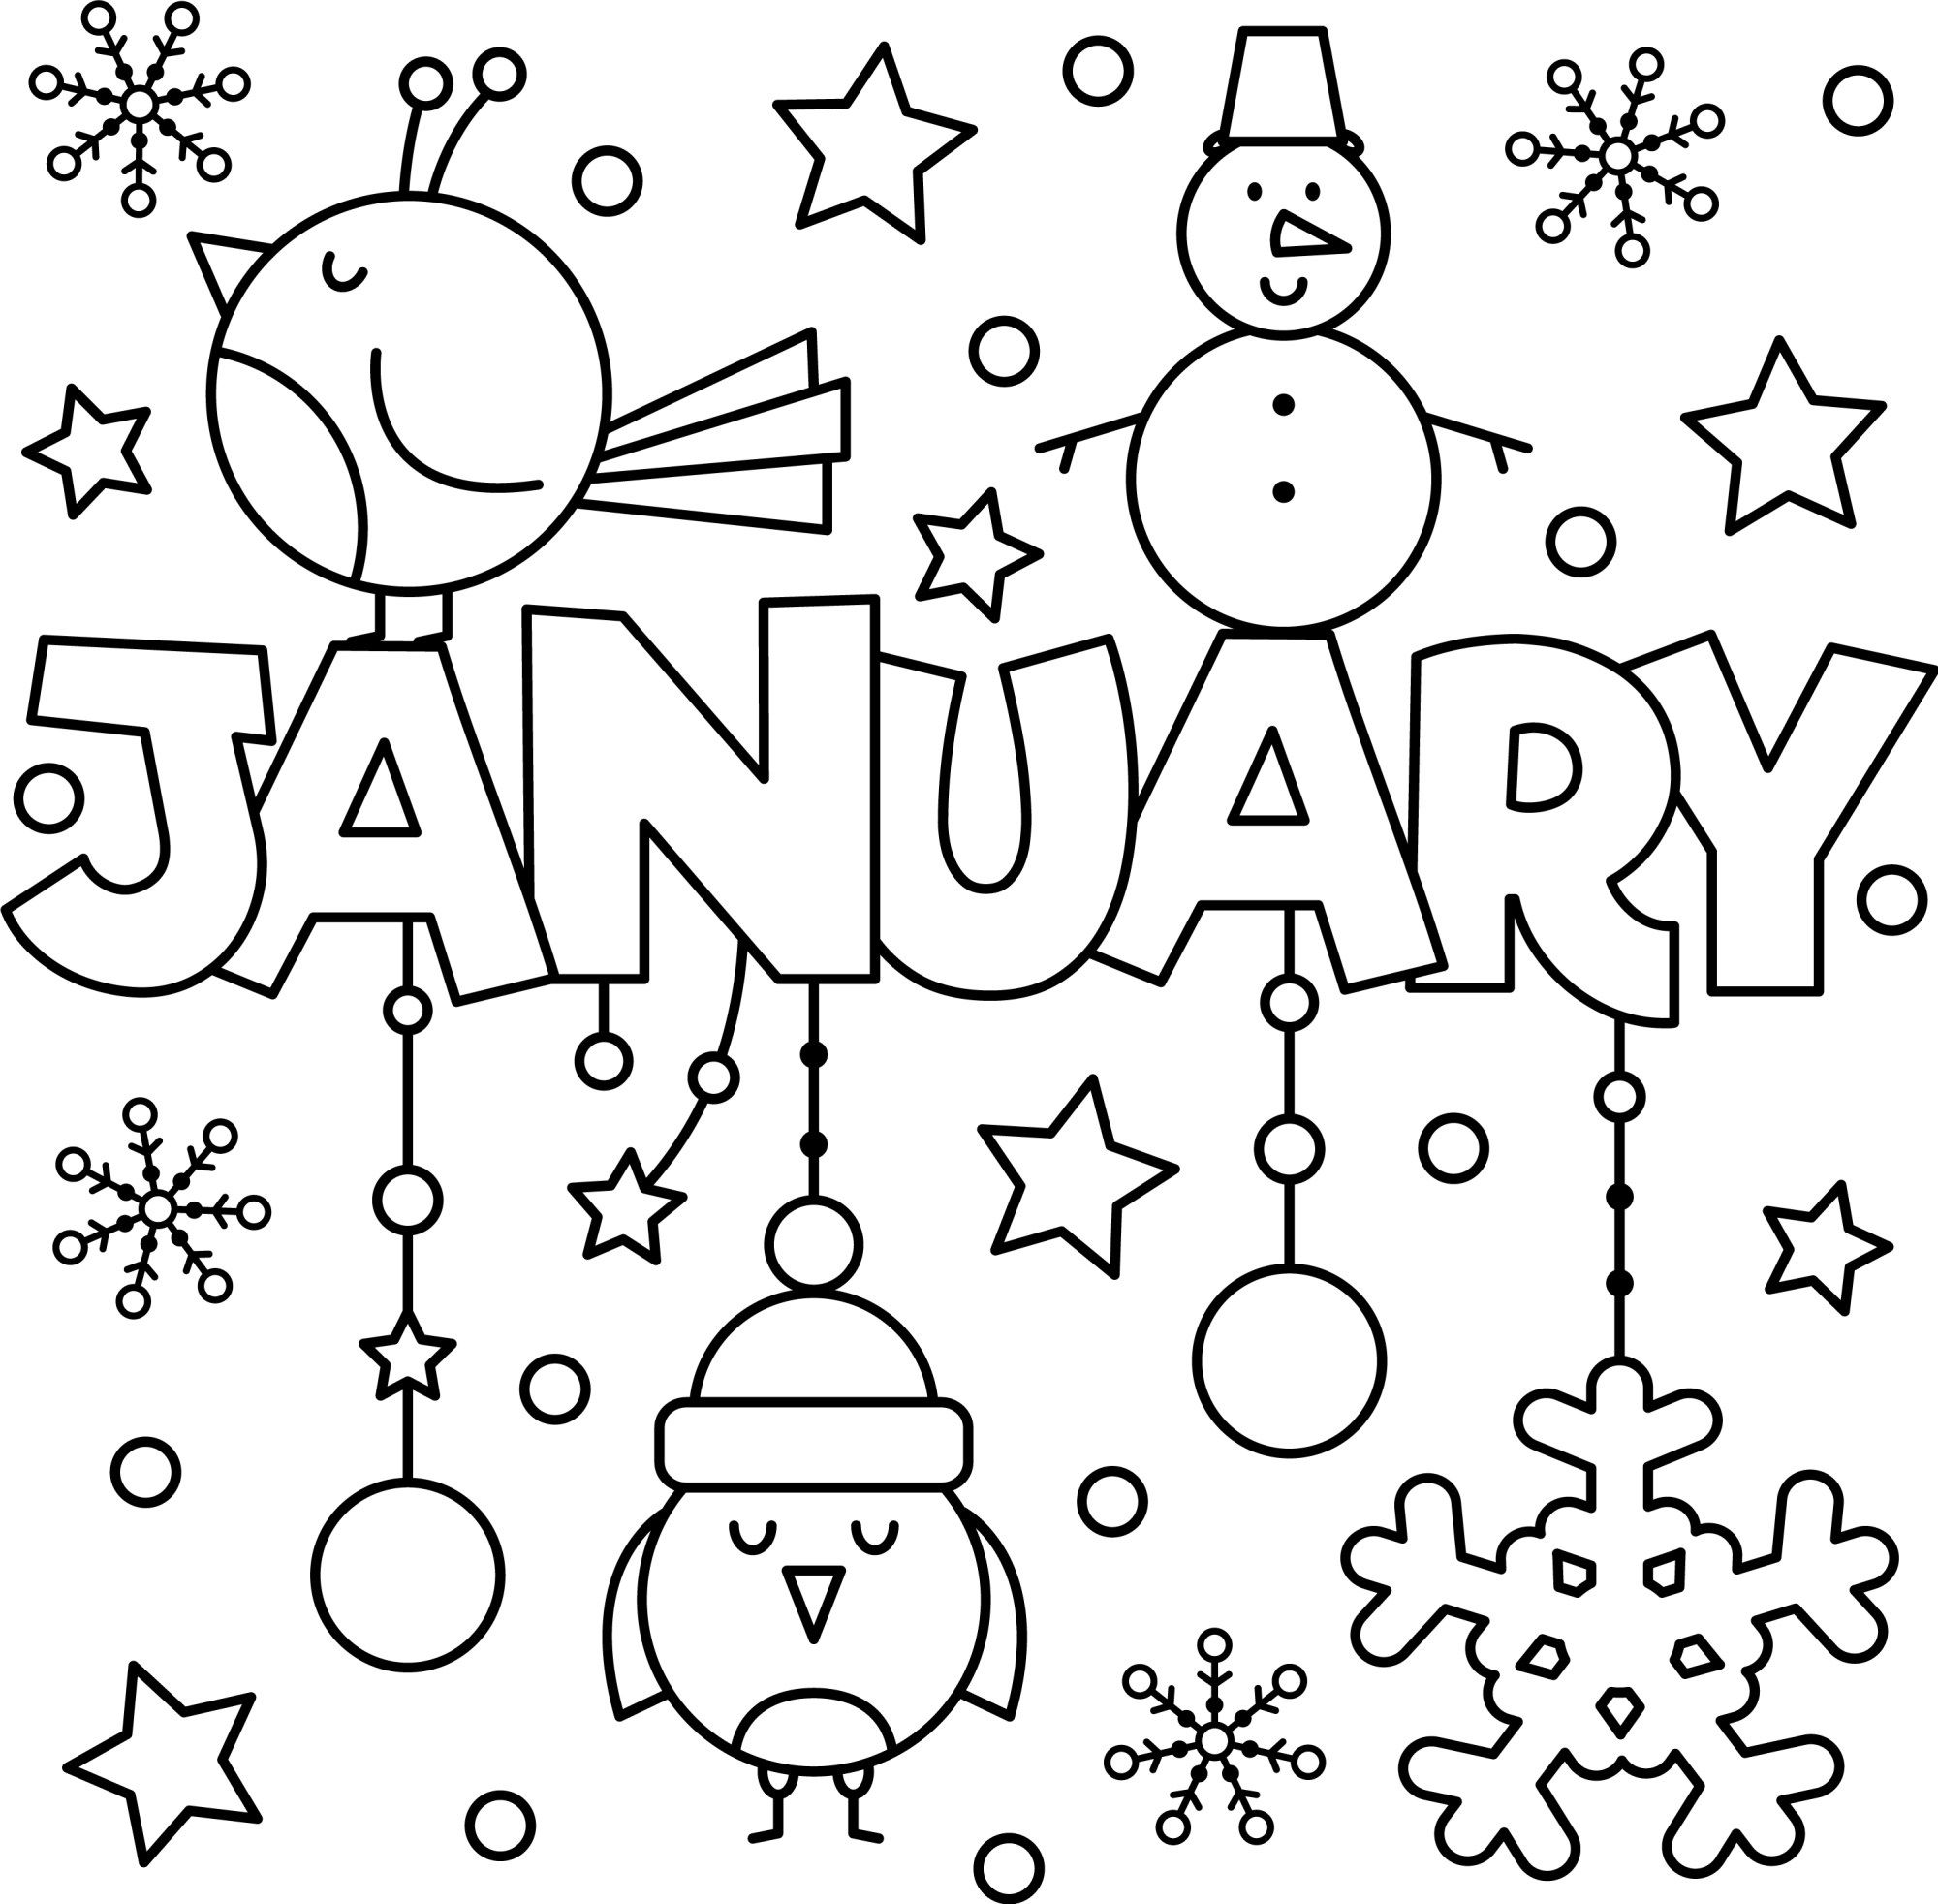 Happy New Year January Colouring Page — Thrifty Mommas ...